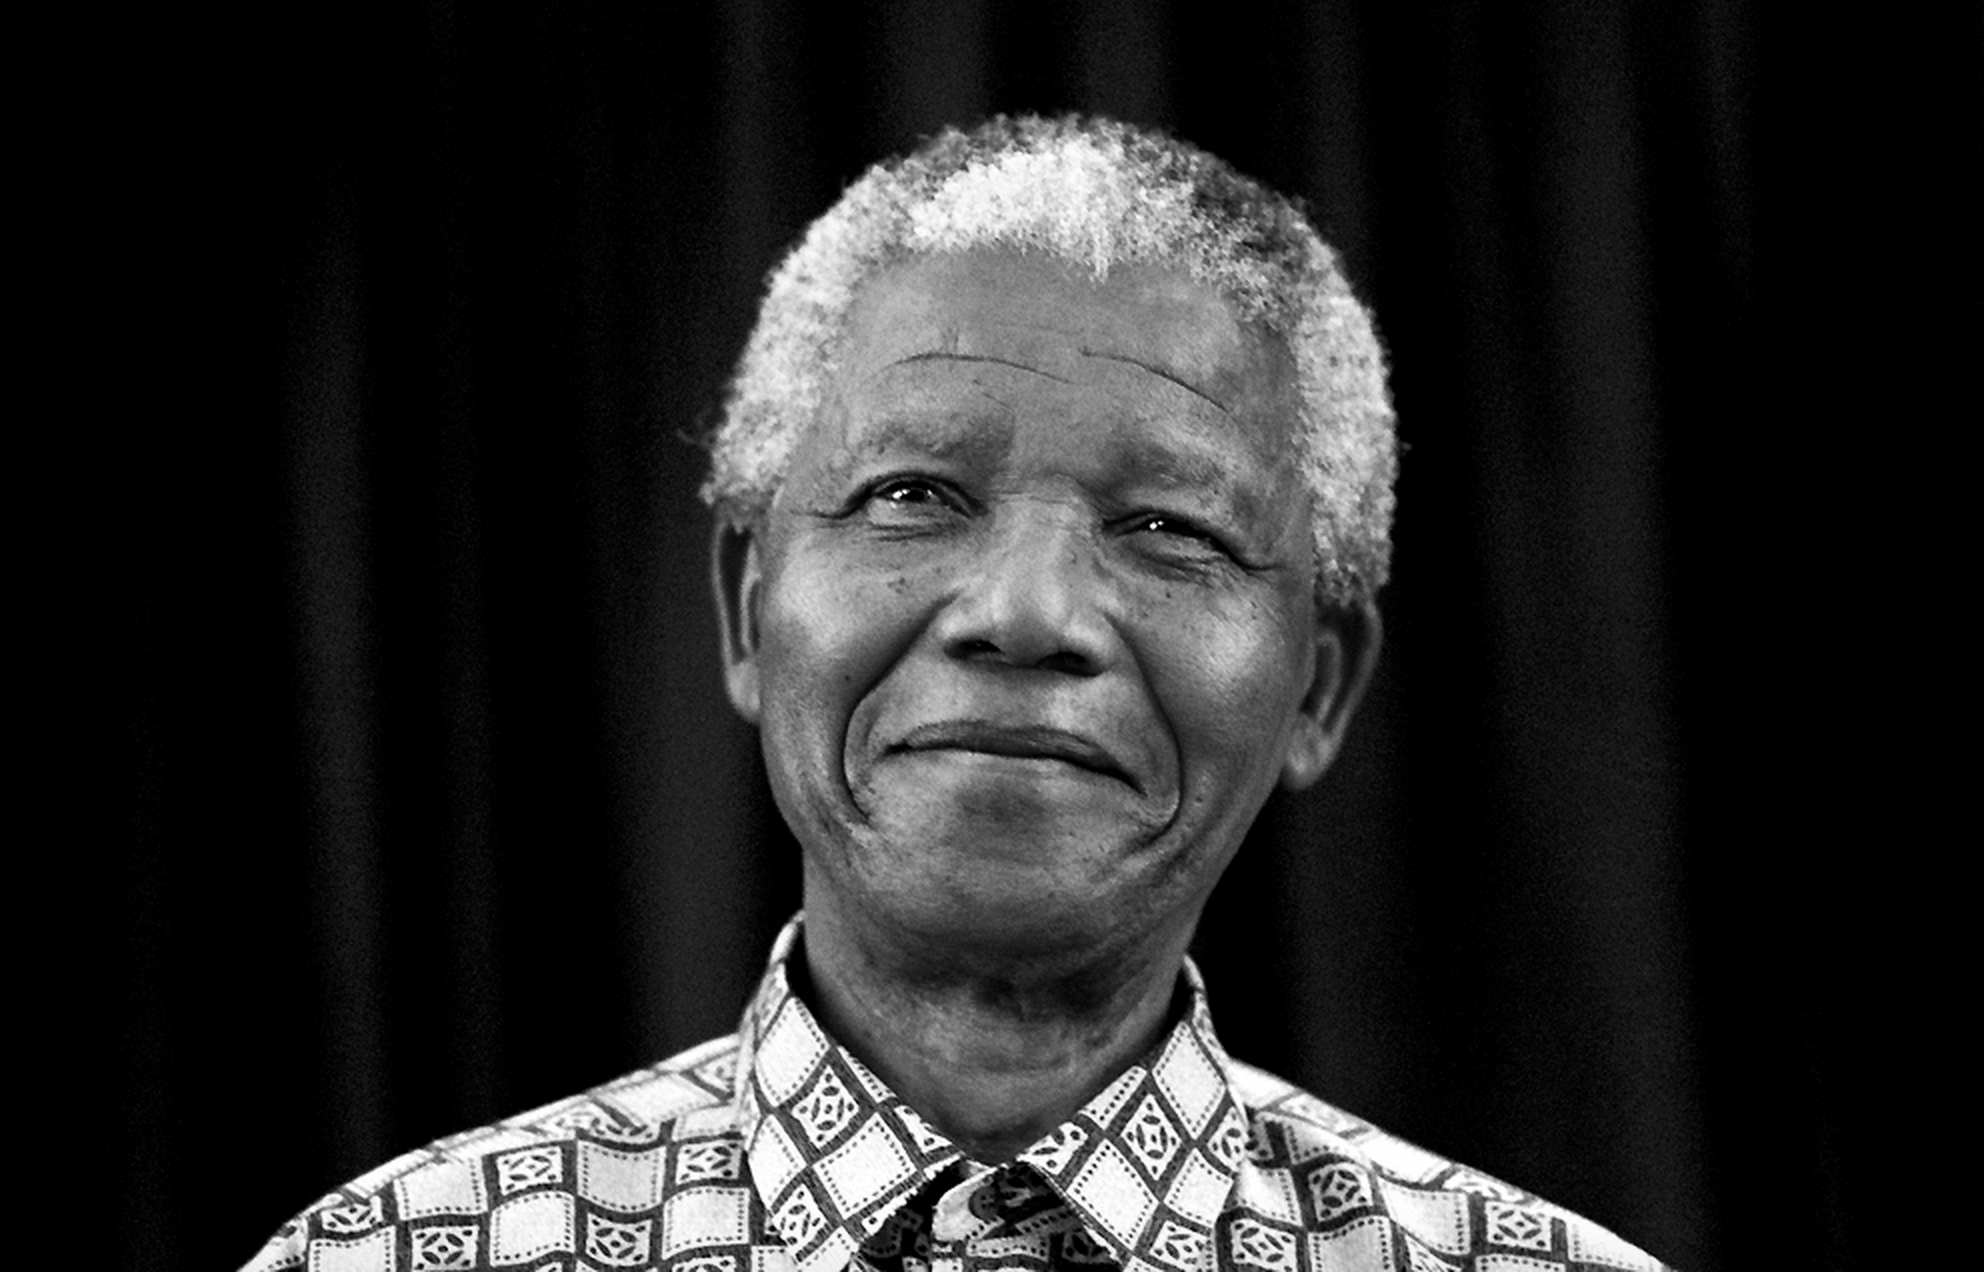 a description of nelson mandela who played an important and controversial role in the history of sou The partition was controversial this legacy connects him to nelson mandela the greatest omission in our 106-year history is undoubtedly that mahatma gandhi.